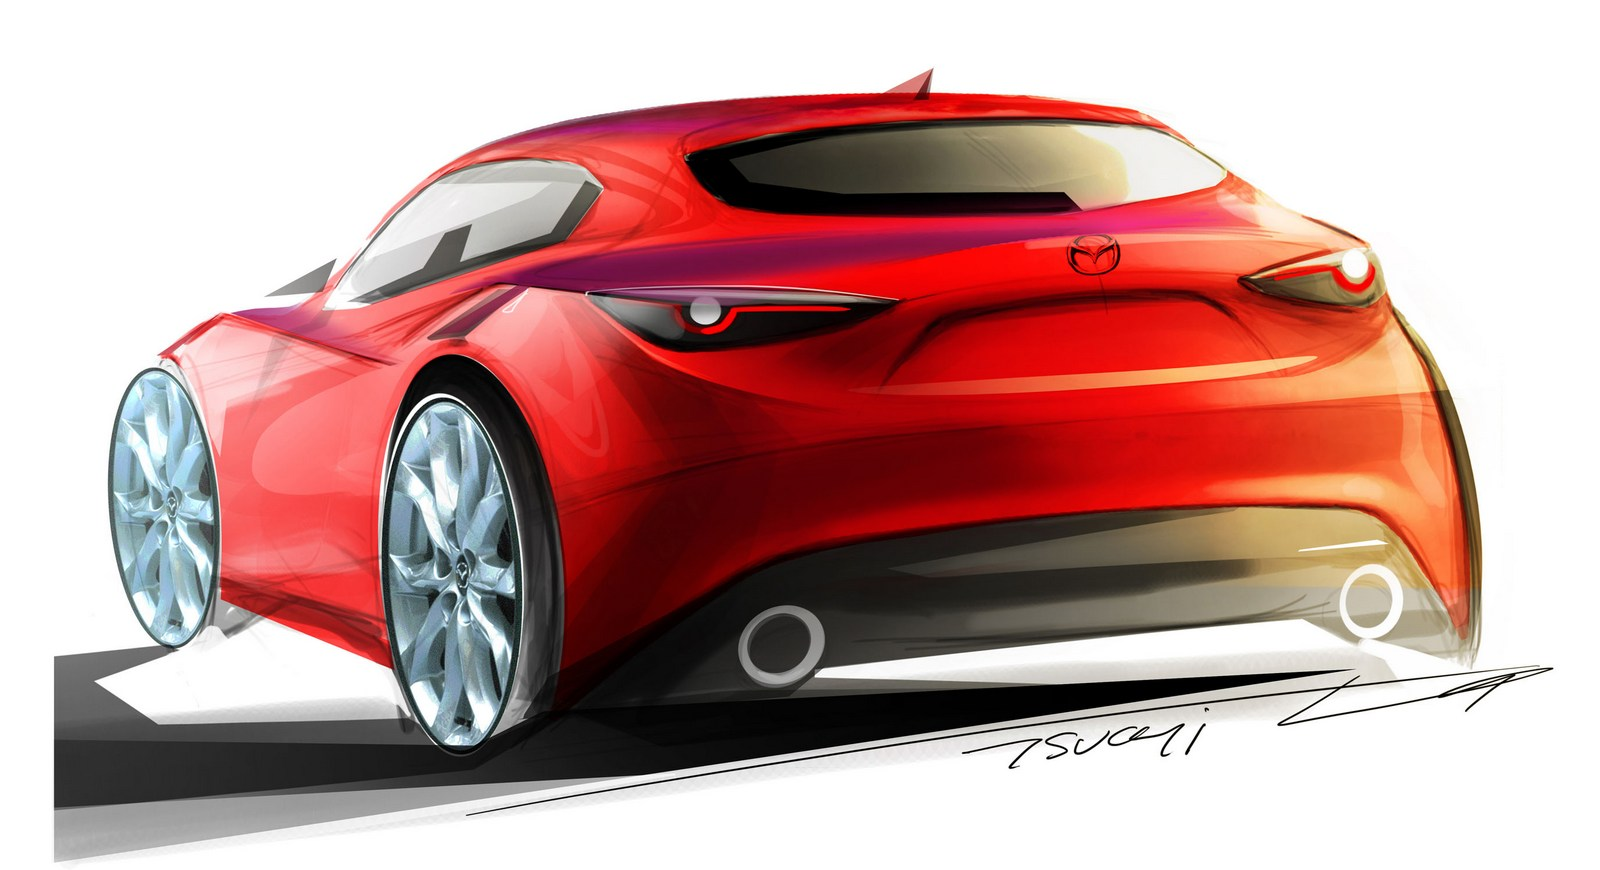 news - 2018 mazda3 to feature game-changing engine, debut soon